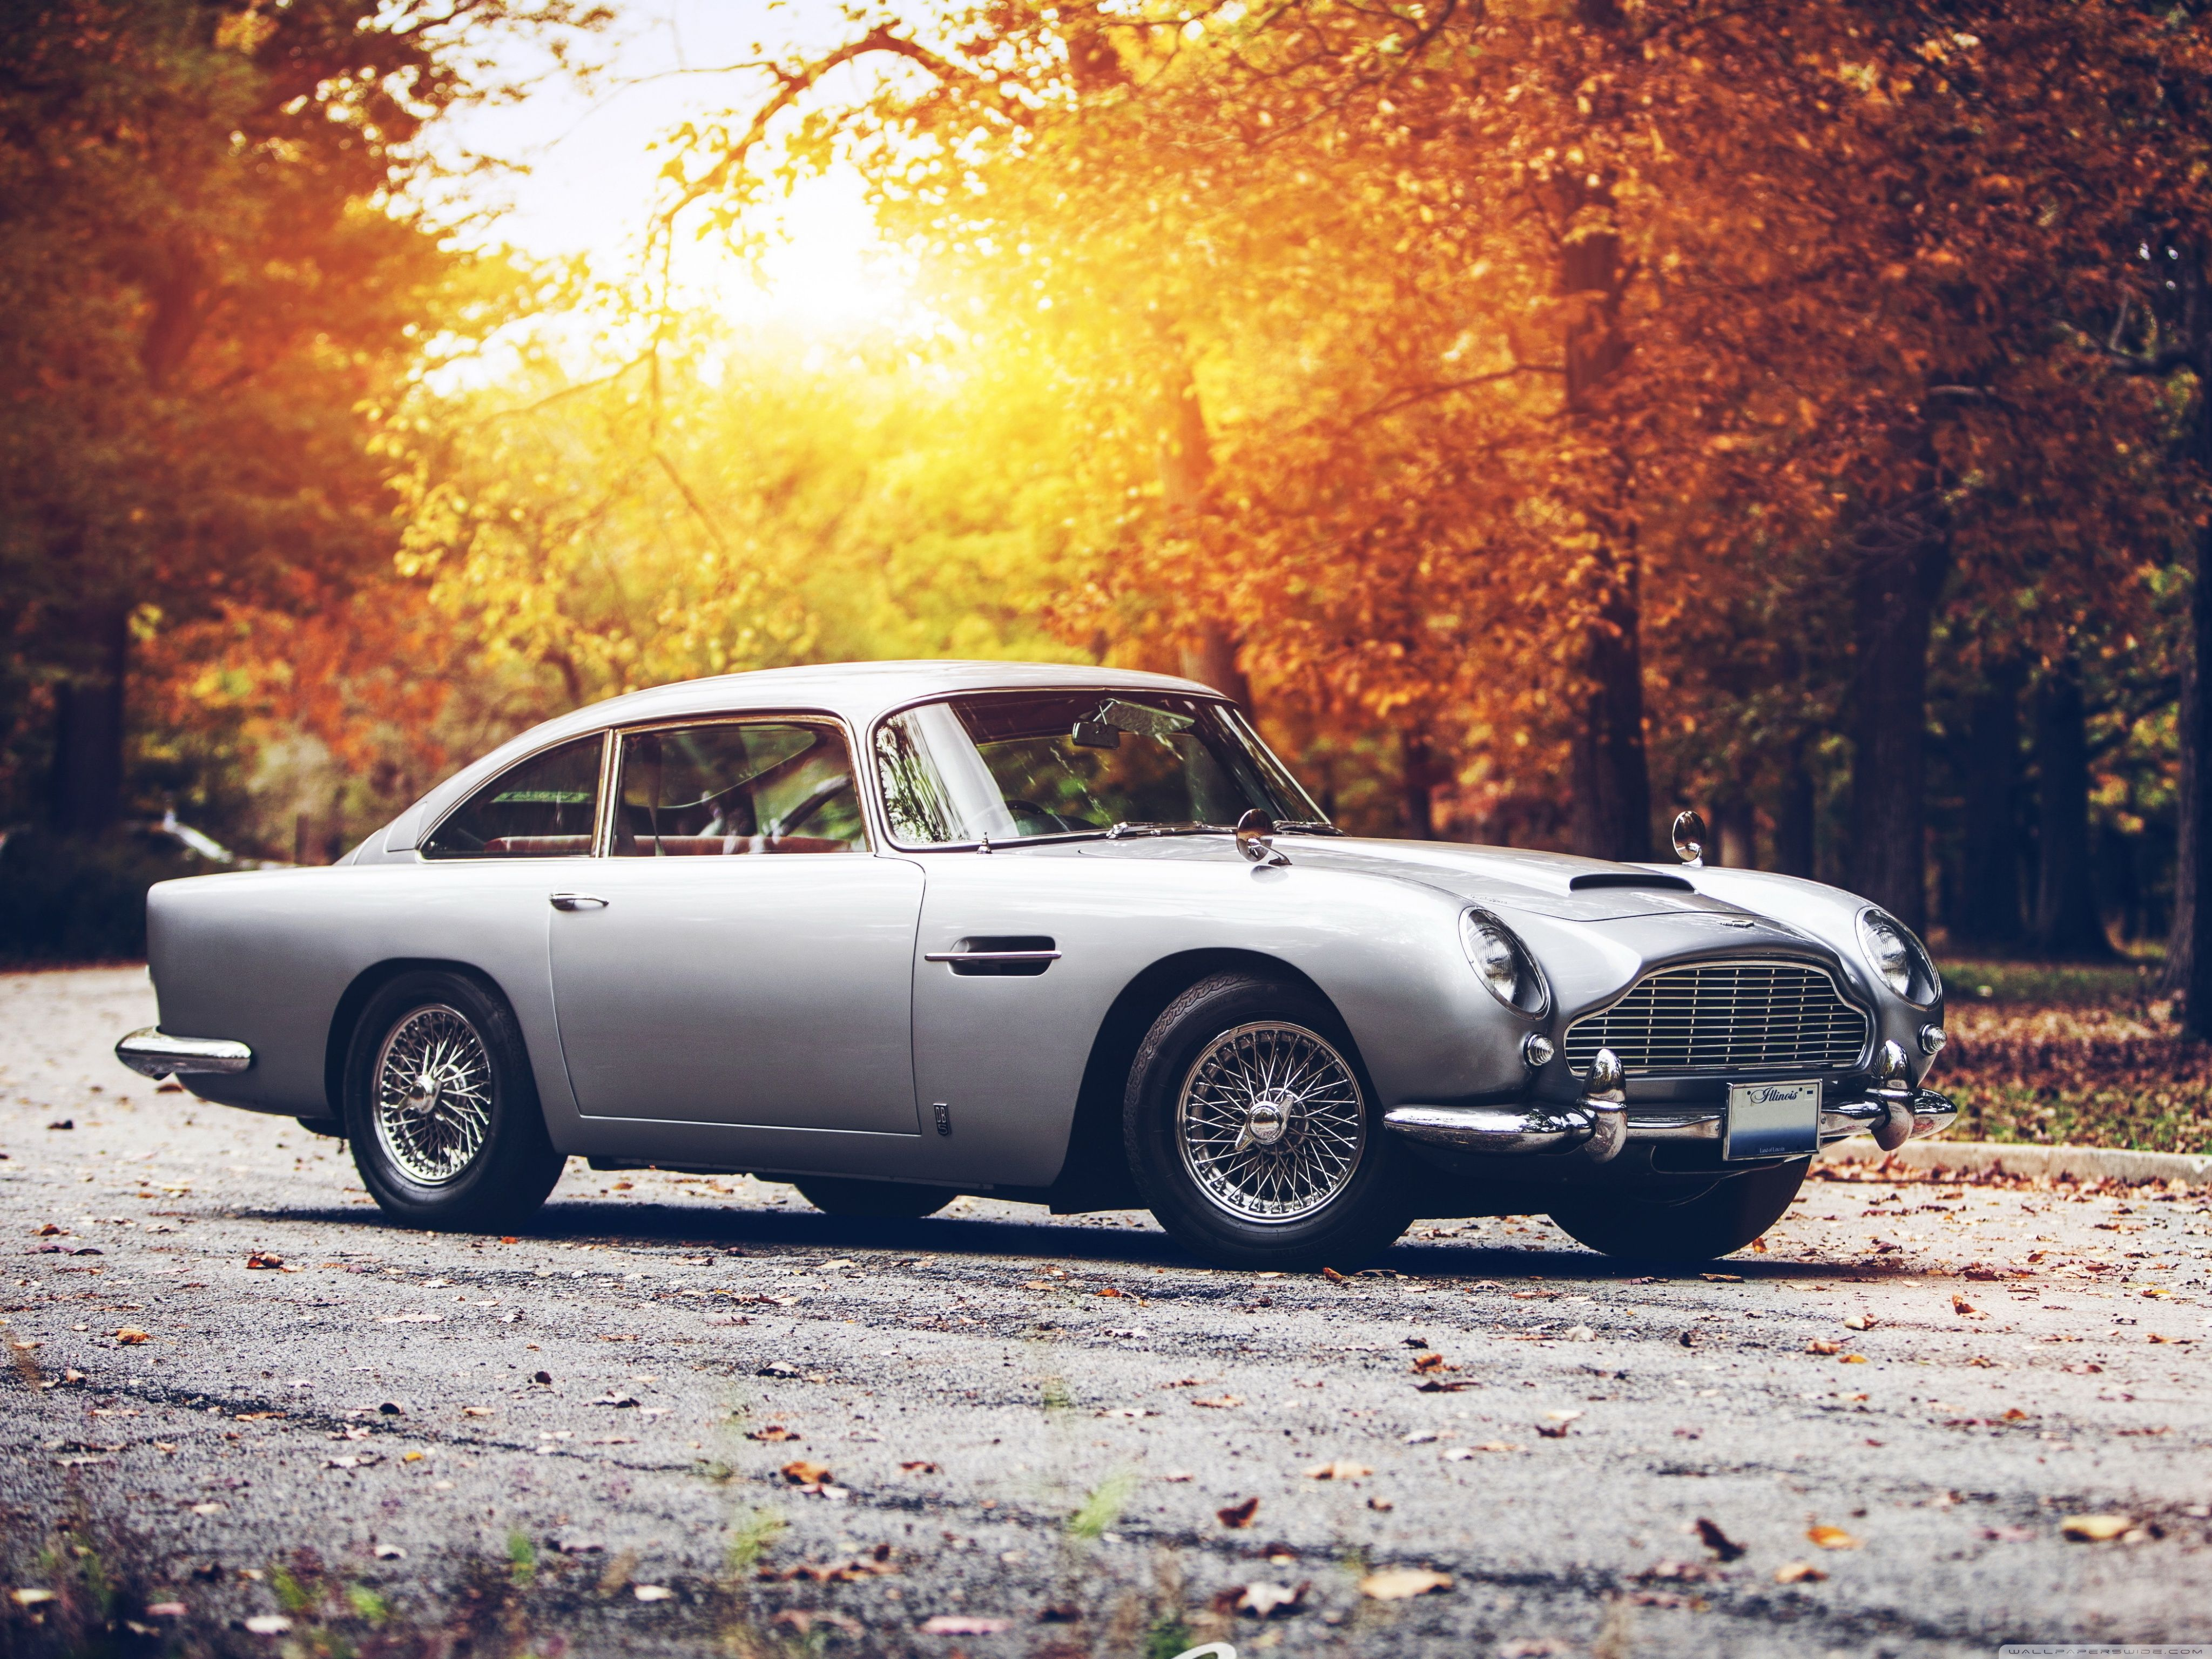 Wallpaperswide com classic cars hd desktop wallpapers for